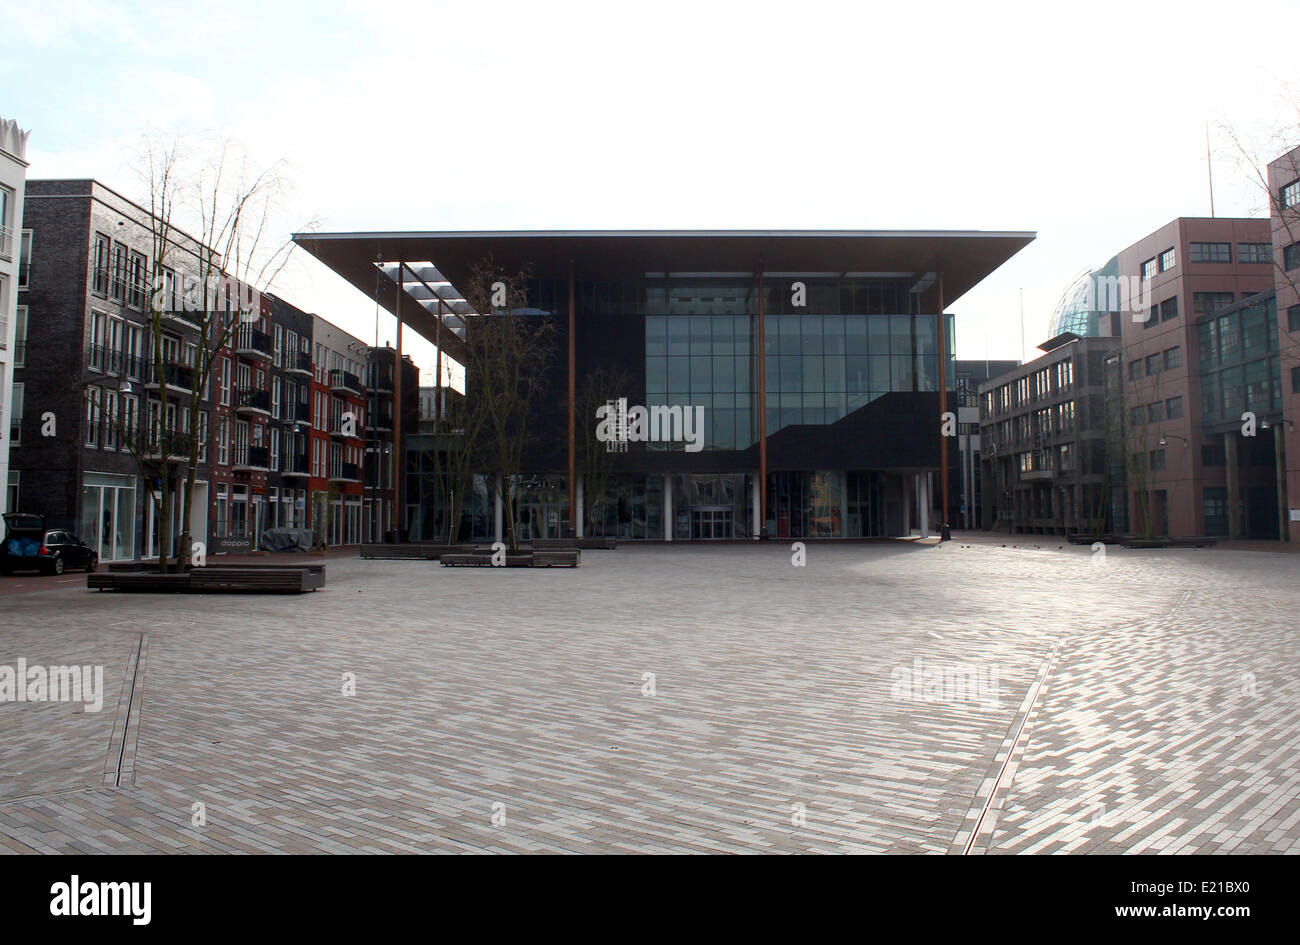 New Frisian Museum ( Frysk Museum) building at  Wilhelminaplein (Zaailand) square in Leeuwarden, The Netherlands, - Stock Image